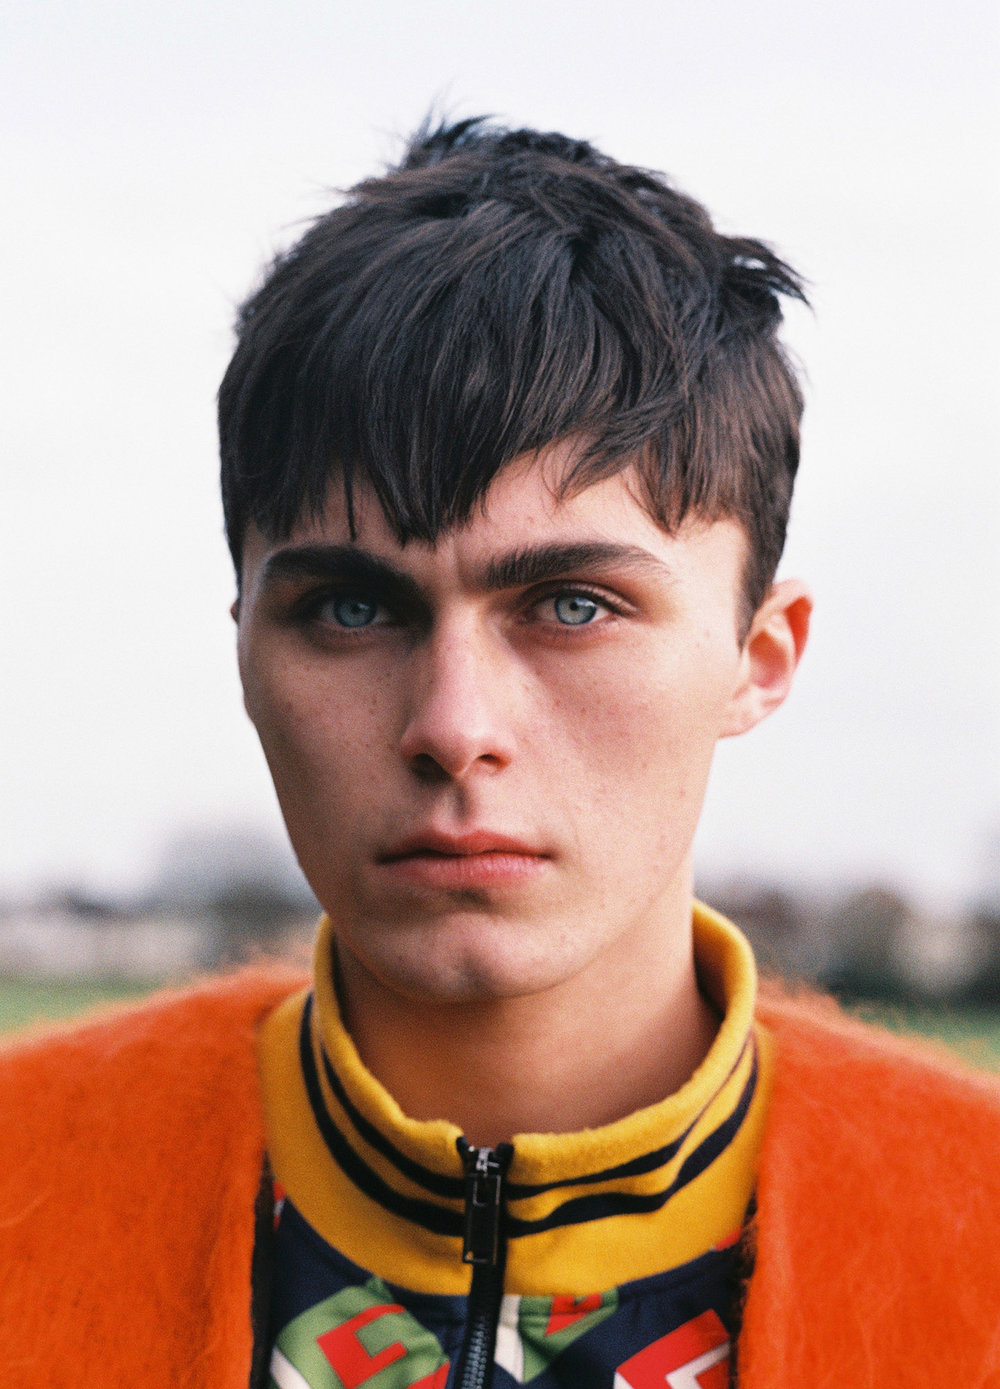 Ira Giorgetti - portrait boy with orange jacket